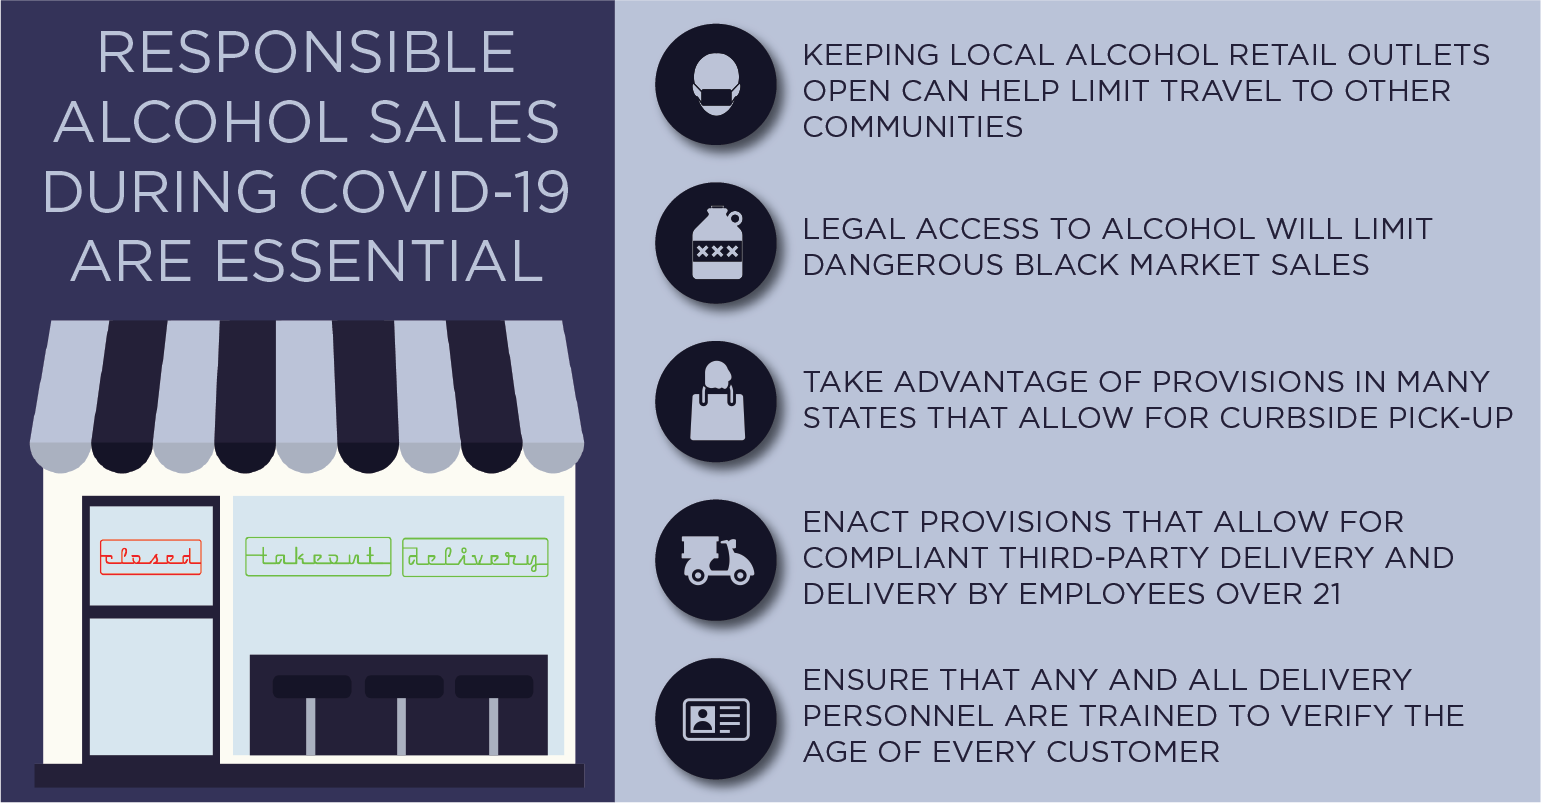 Responsible Alcohol Sales During COVID-19 Are Essential